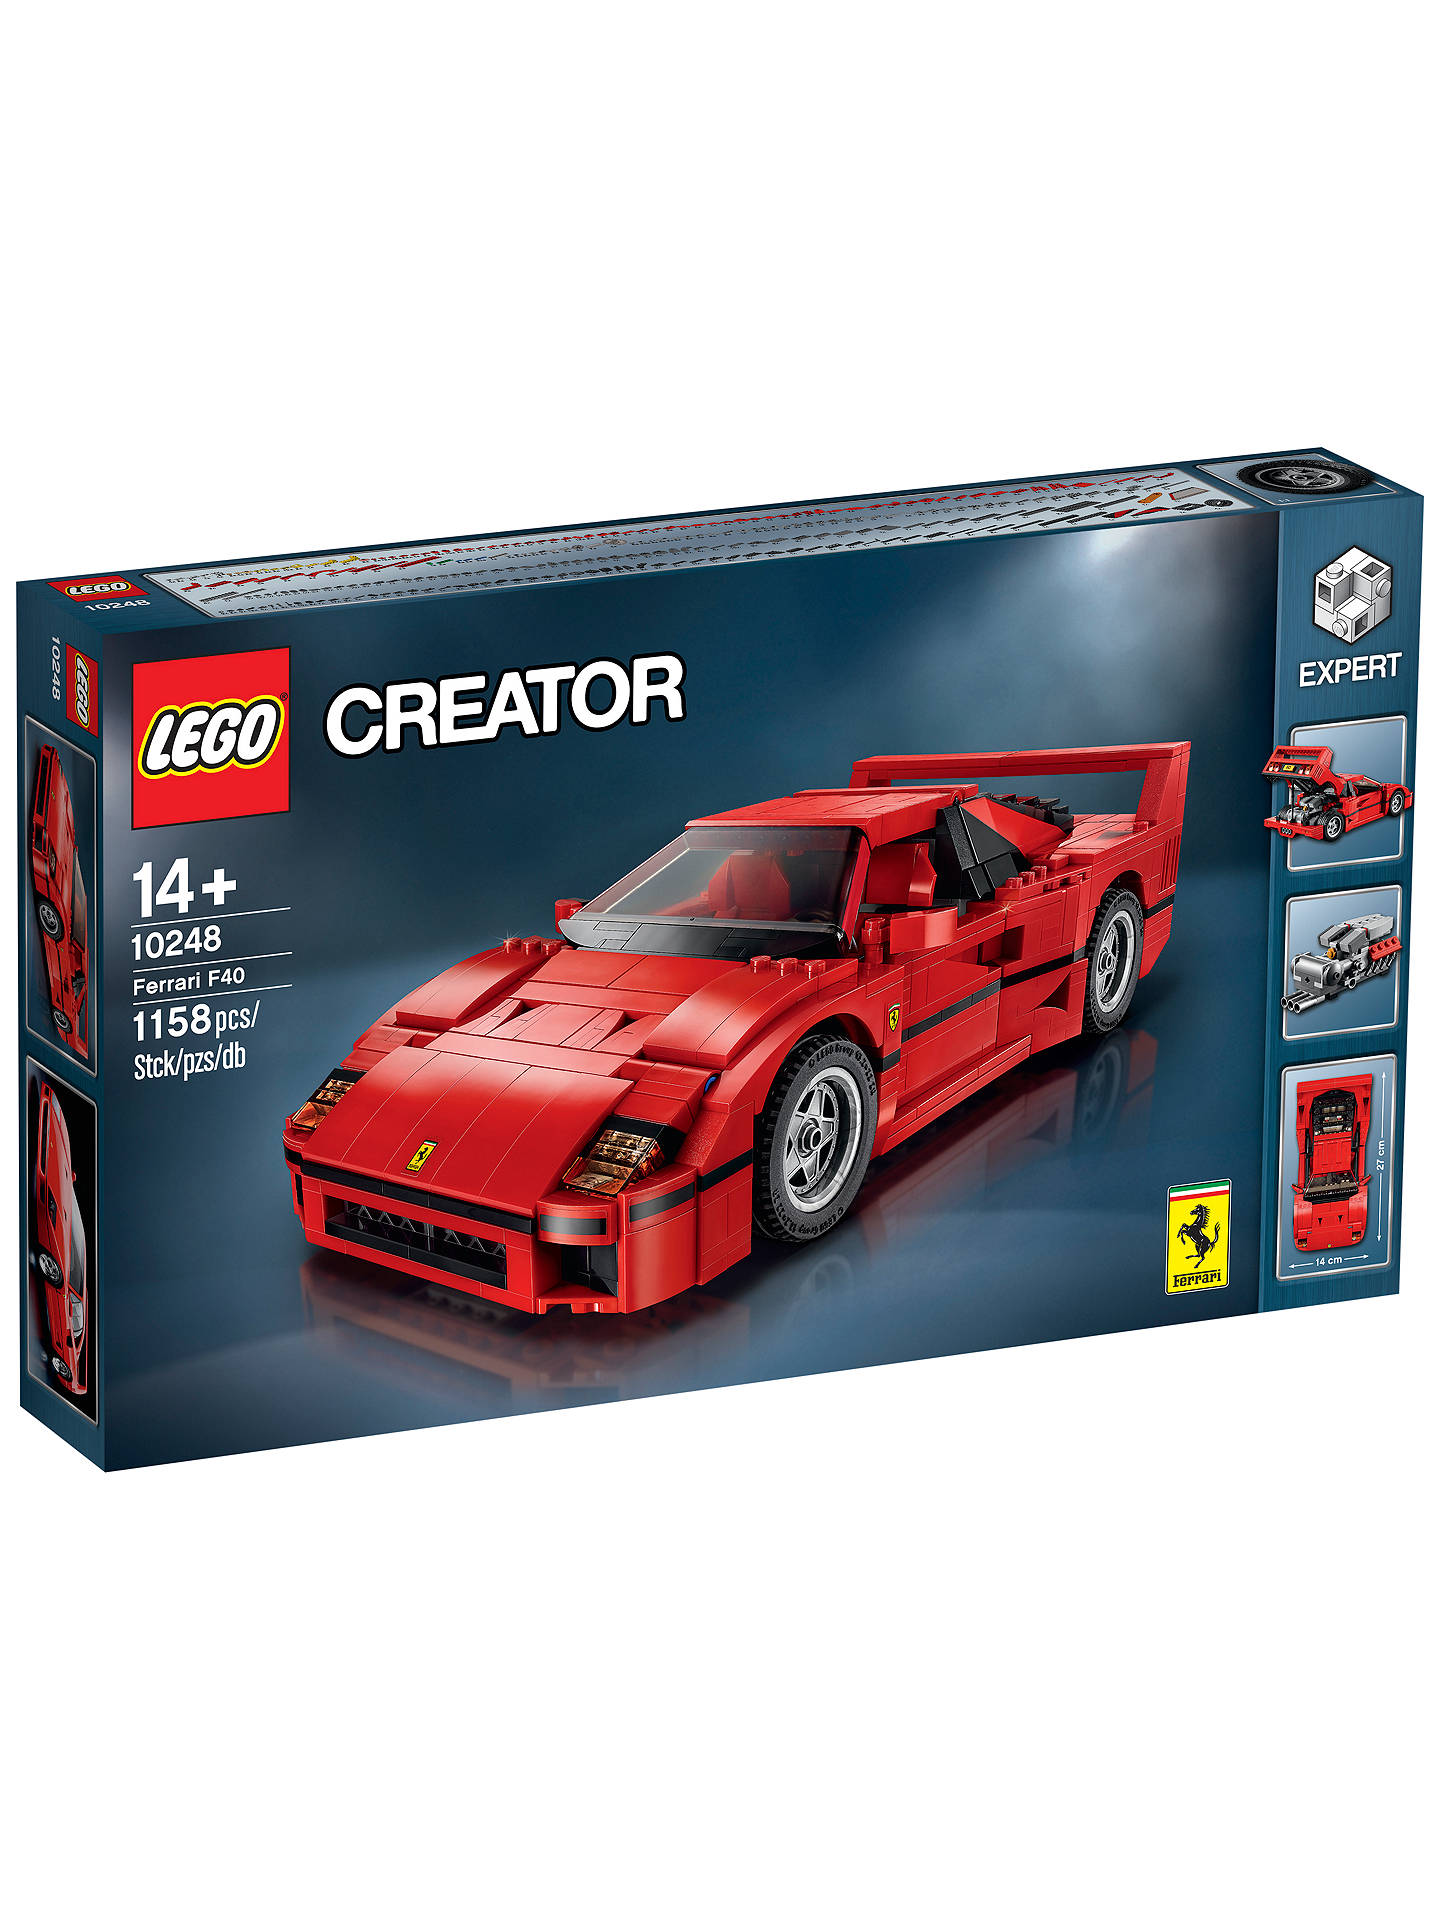 lego creator 10248 ferrari f40 at john lewis partners. Black Bedroom Furniture Sets. Home Design Ideas